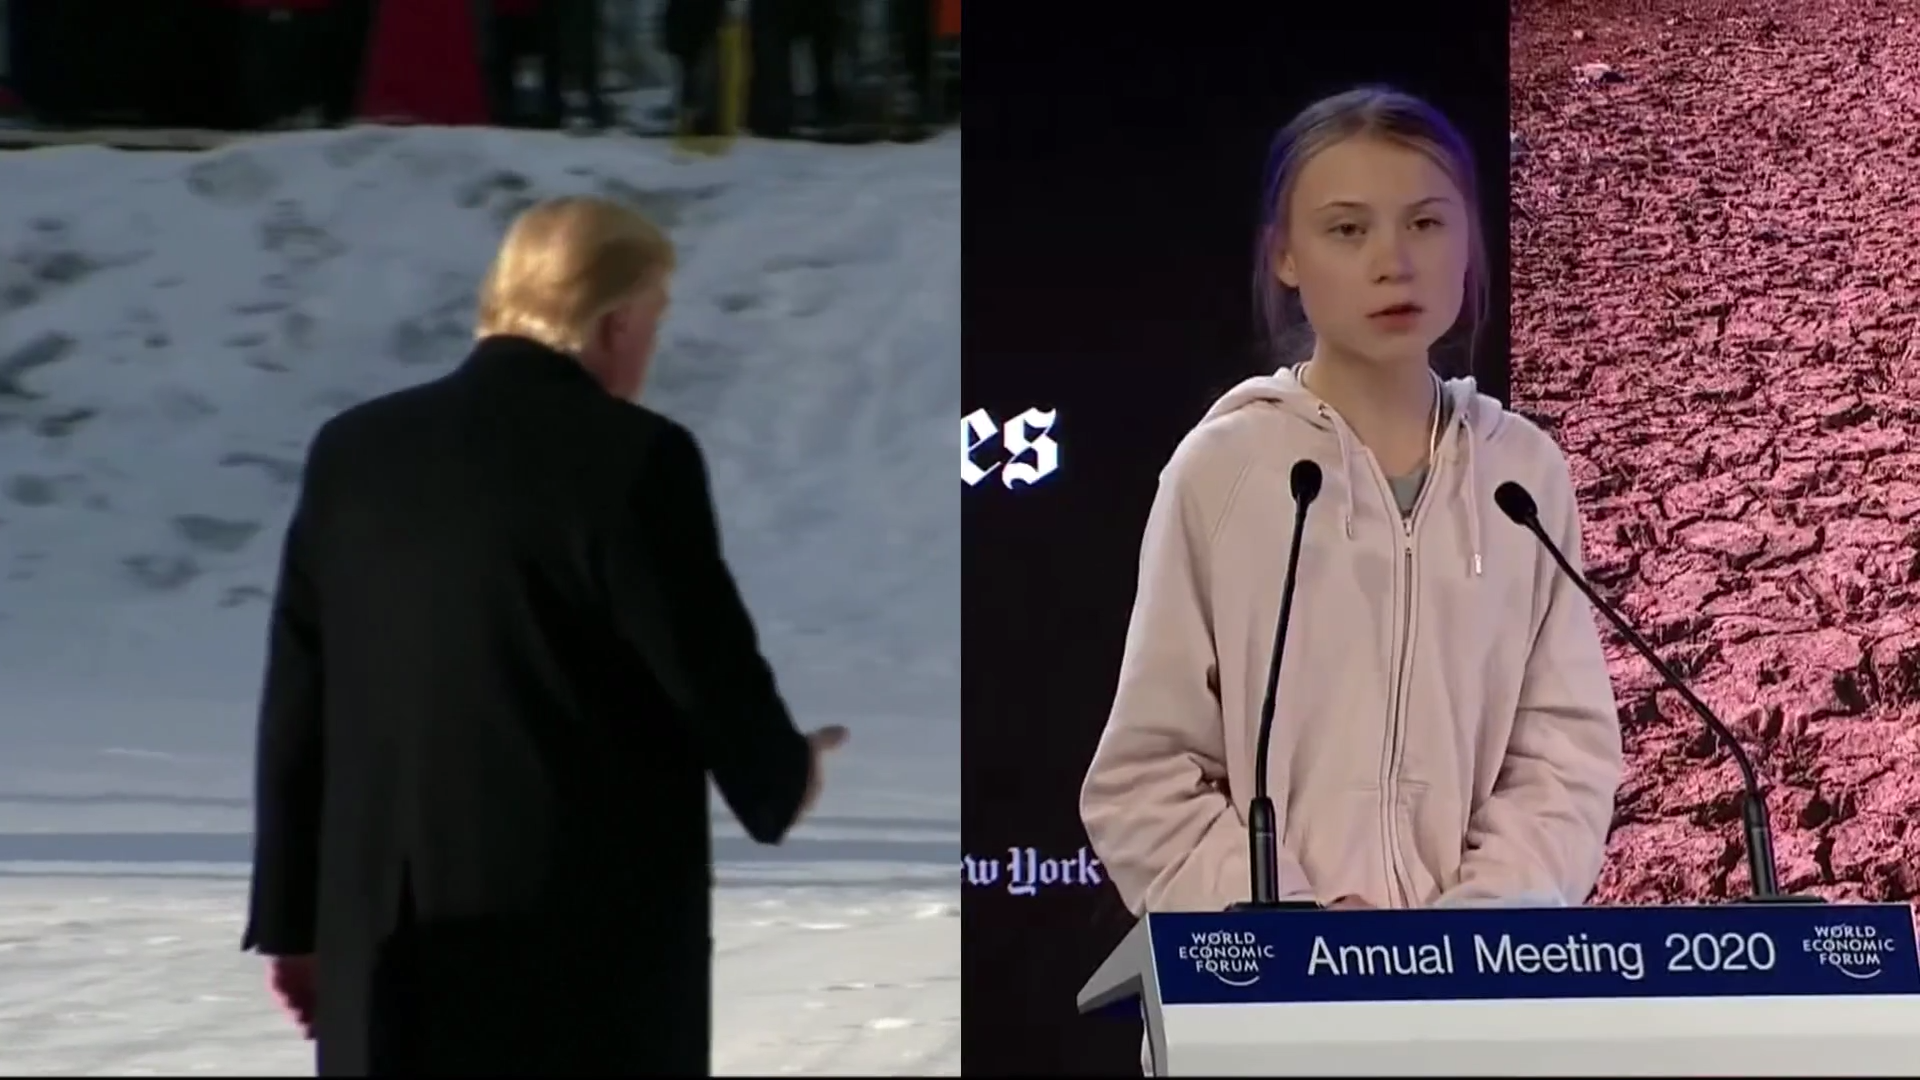 Trump clashes with Greta Thunberg at Davos - channel 4